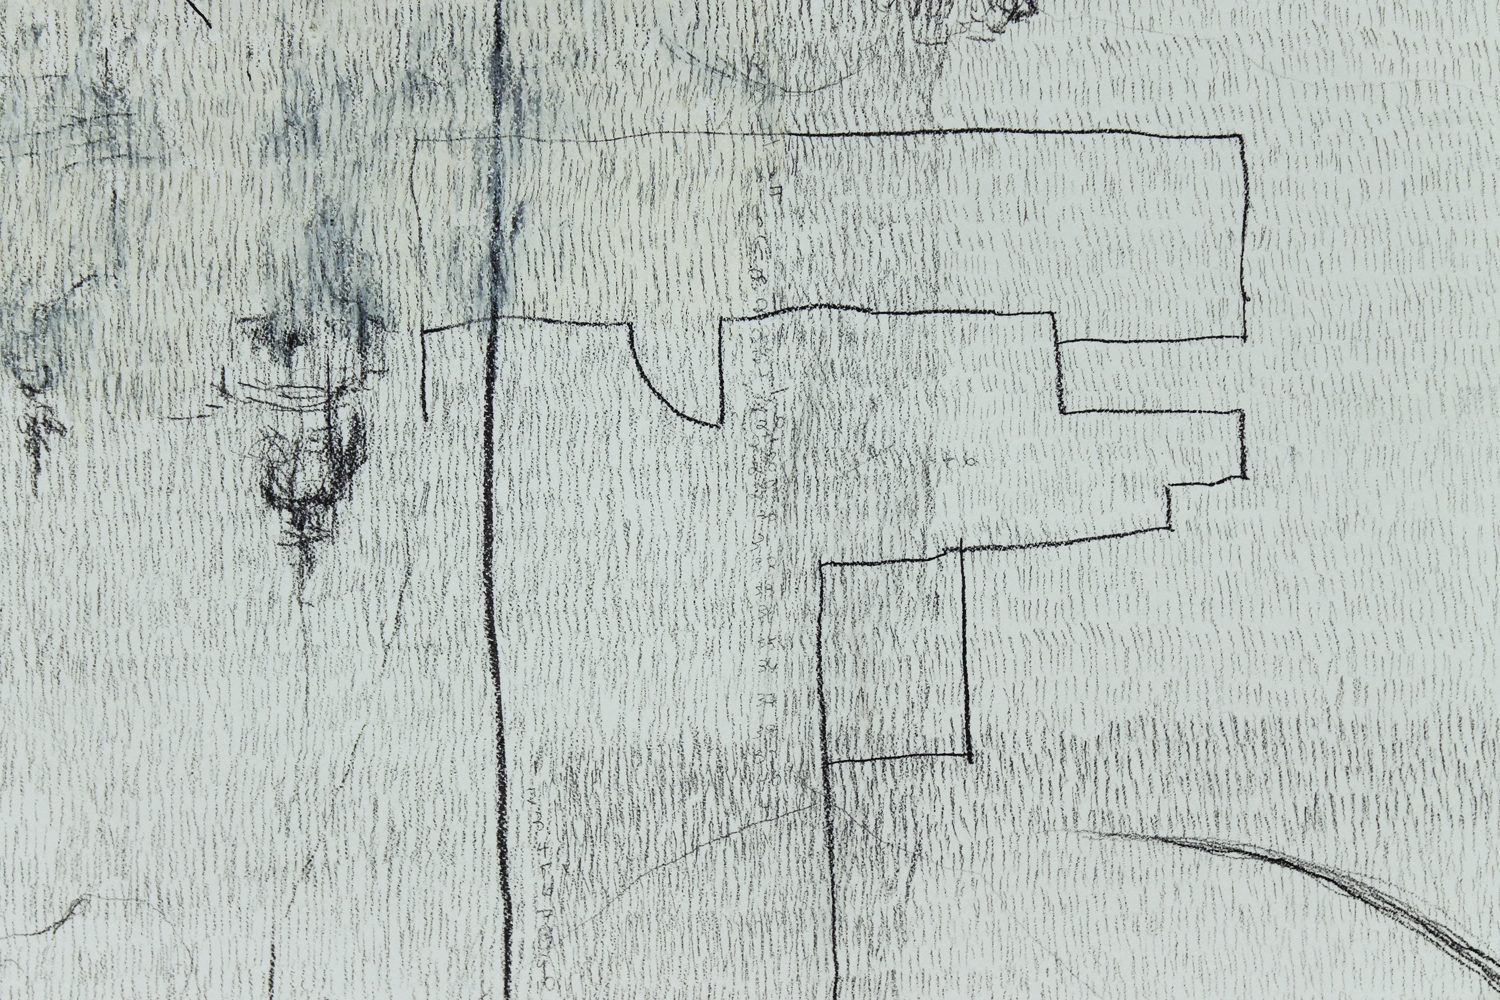 """10,639 Steps to Catch My Breath (detail) , Graphite, charcoal, oil on paper,14.2"""" x 17.5"""", 2010"""